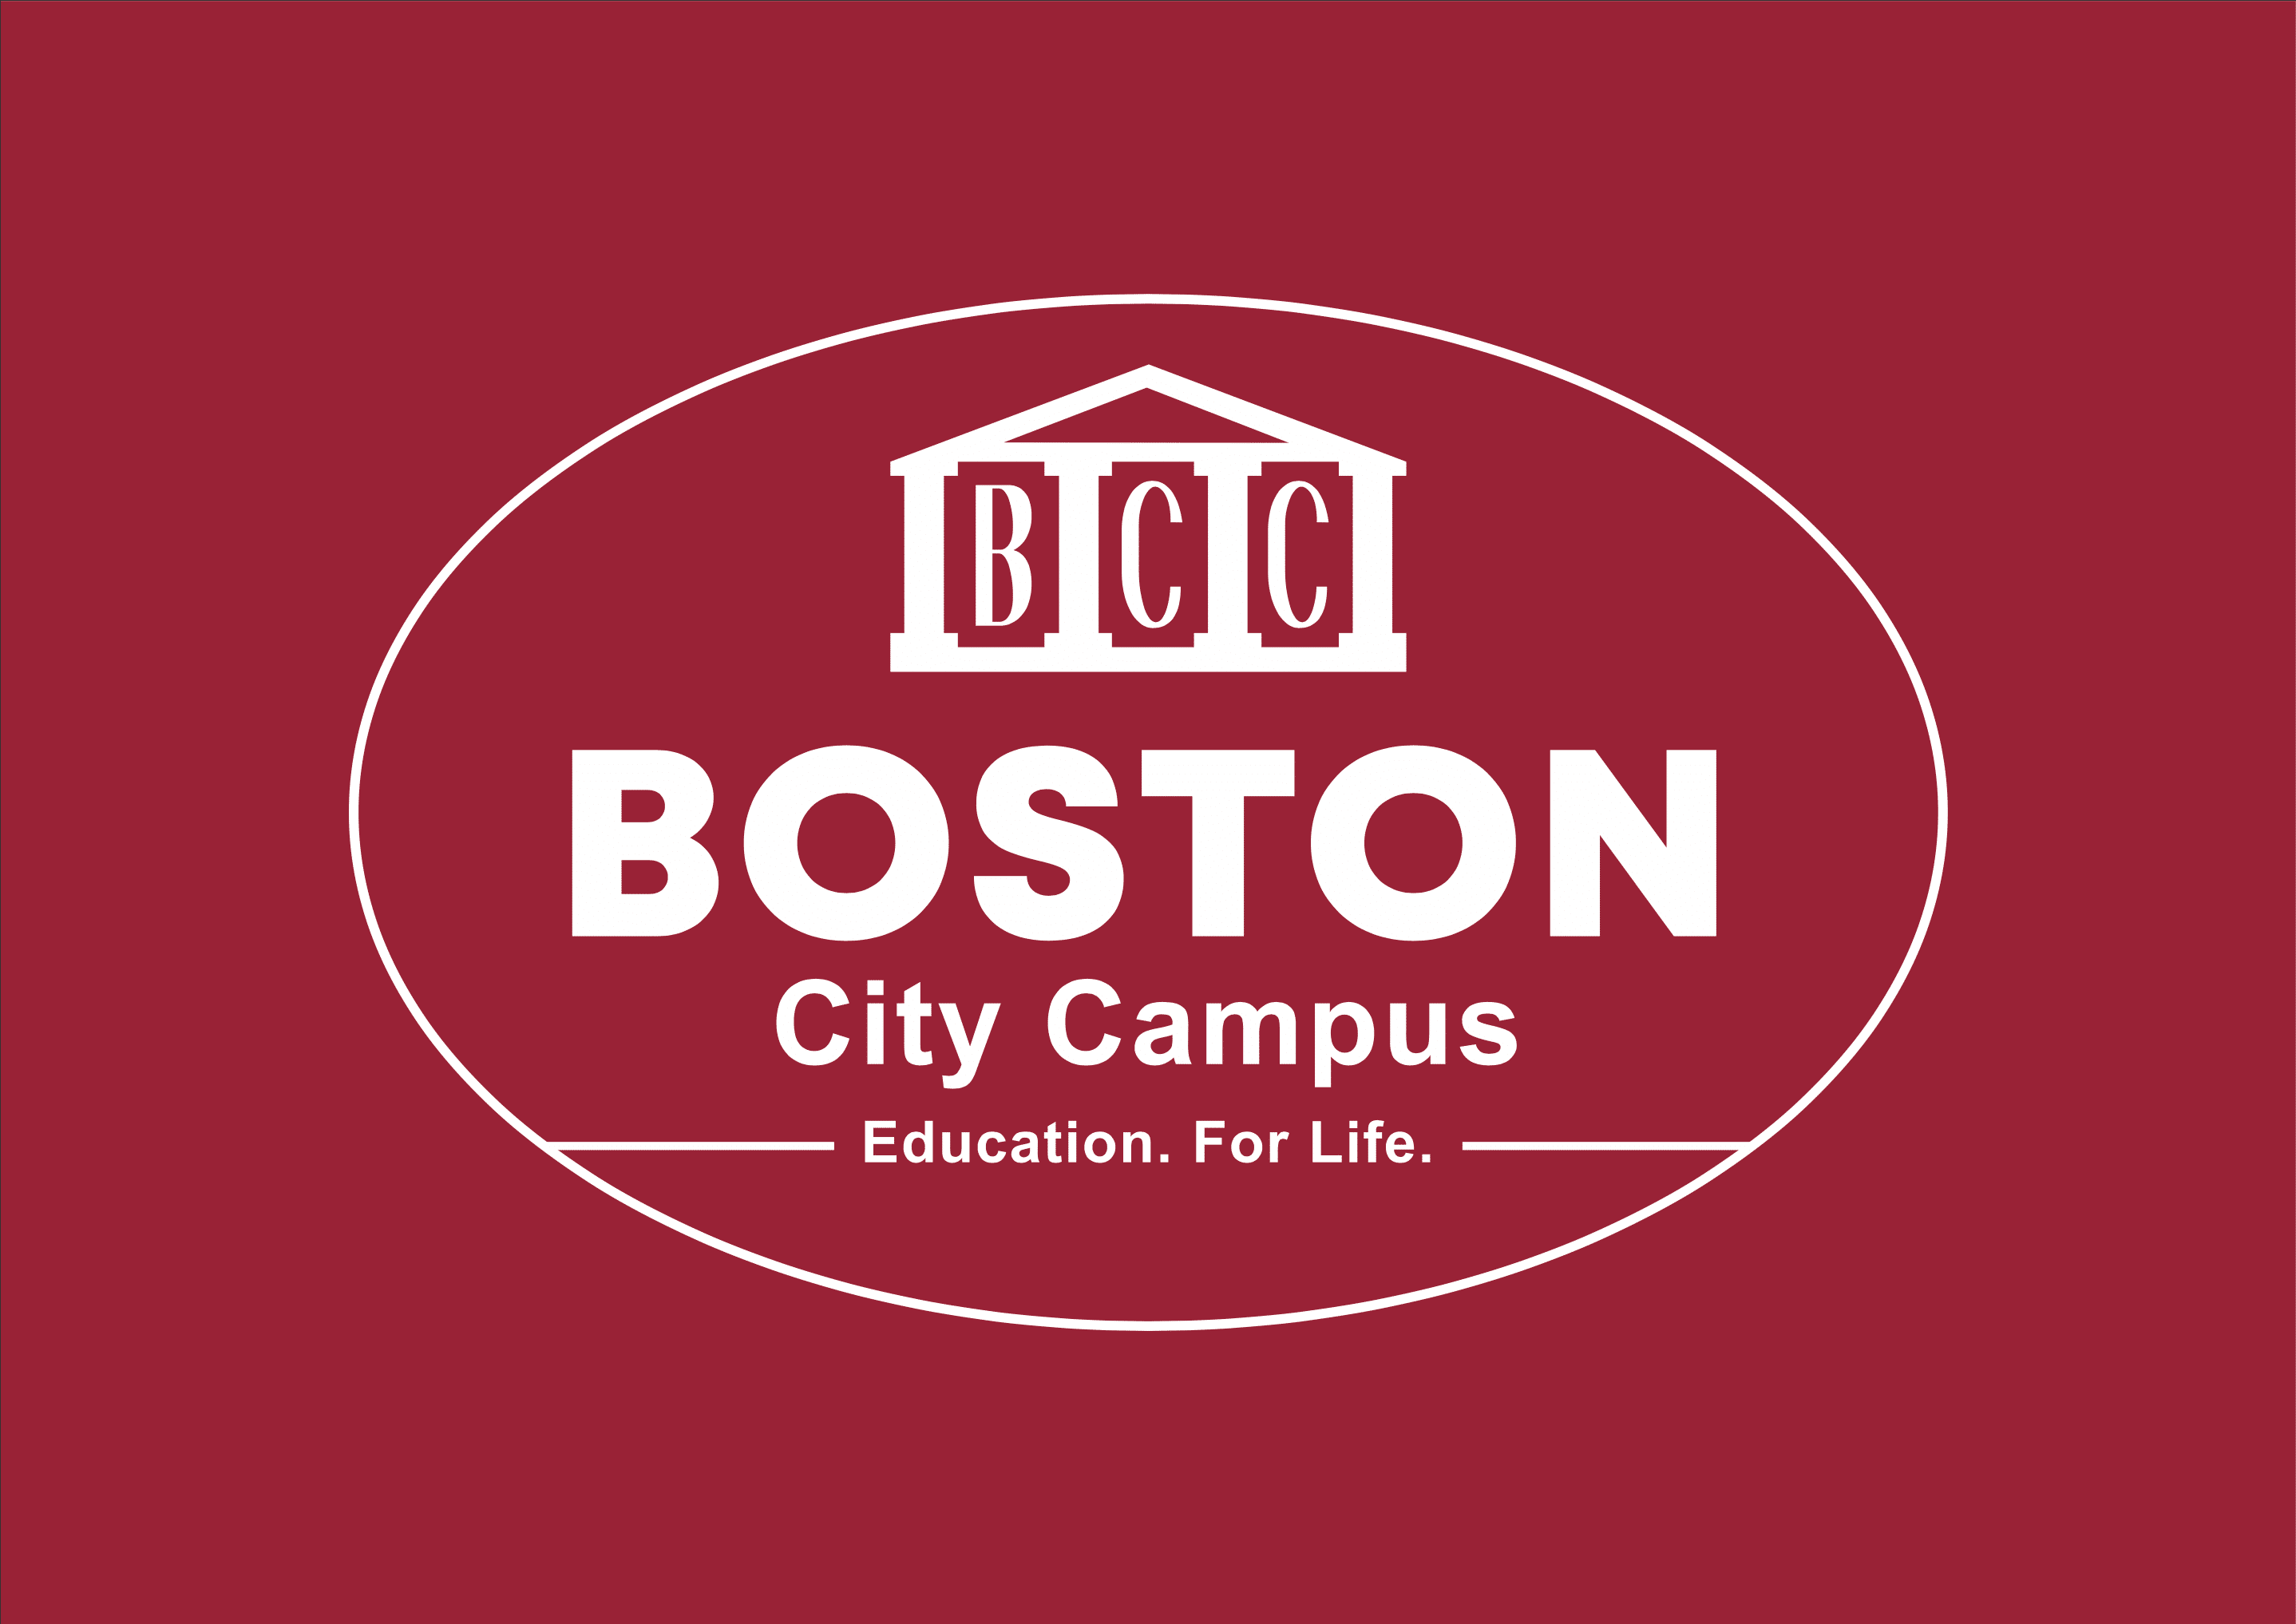 Boston College Online Application for 2022